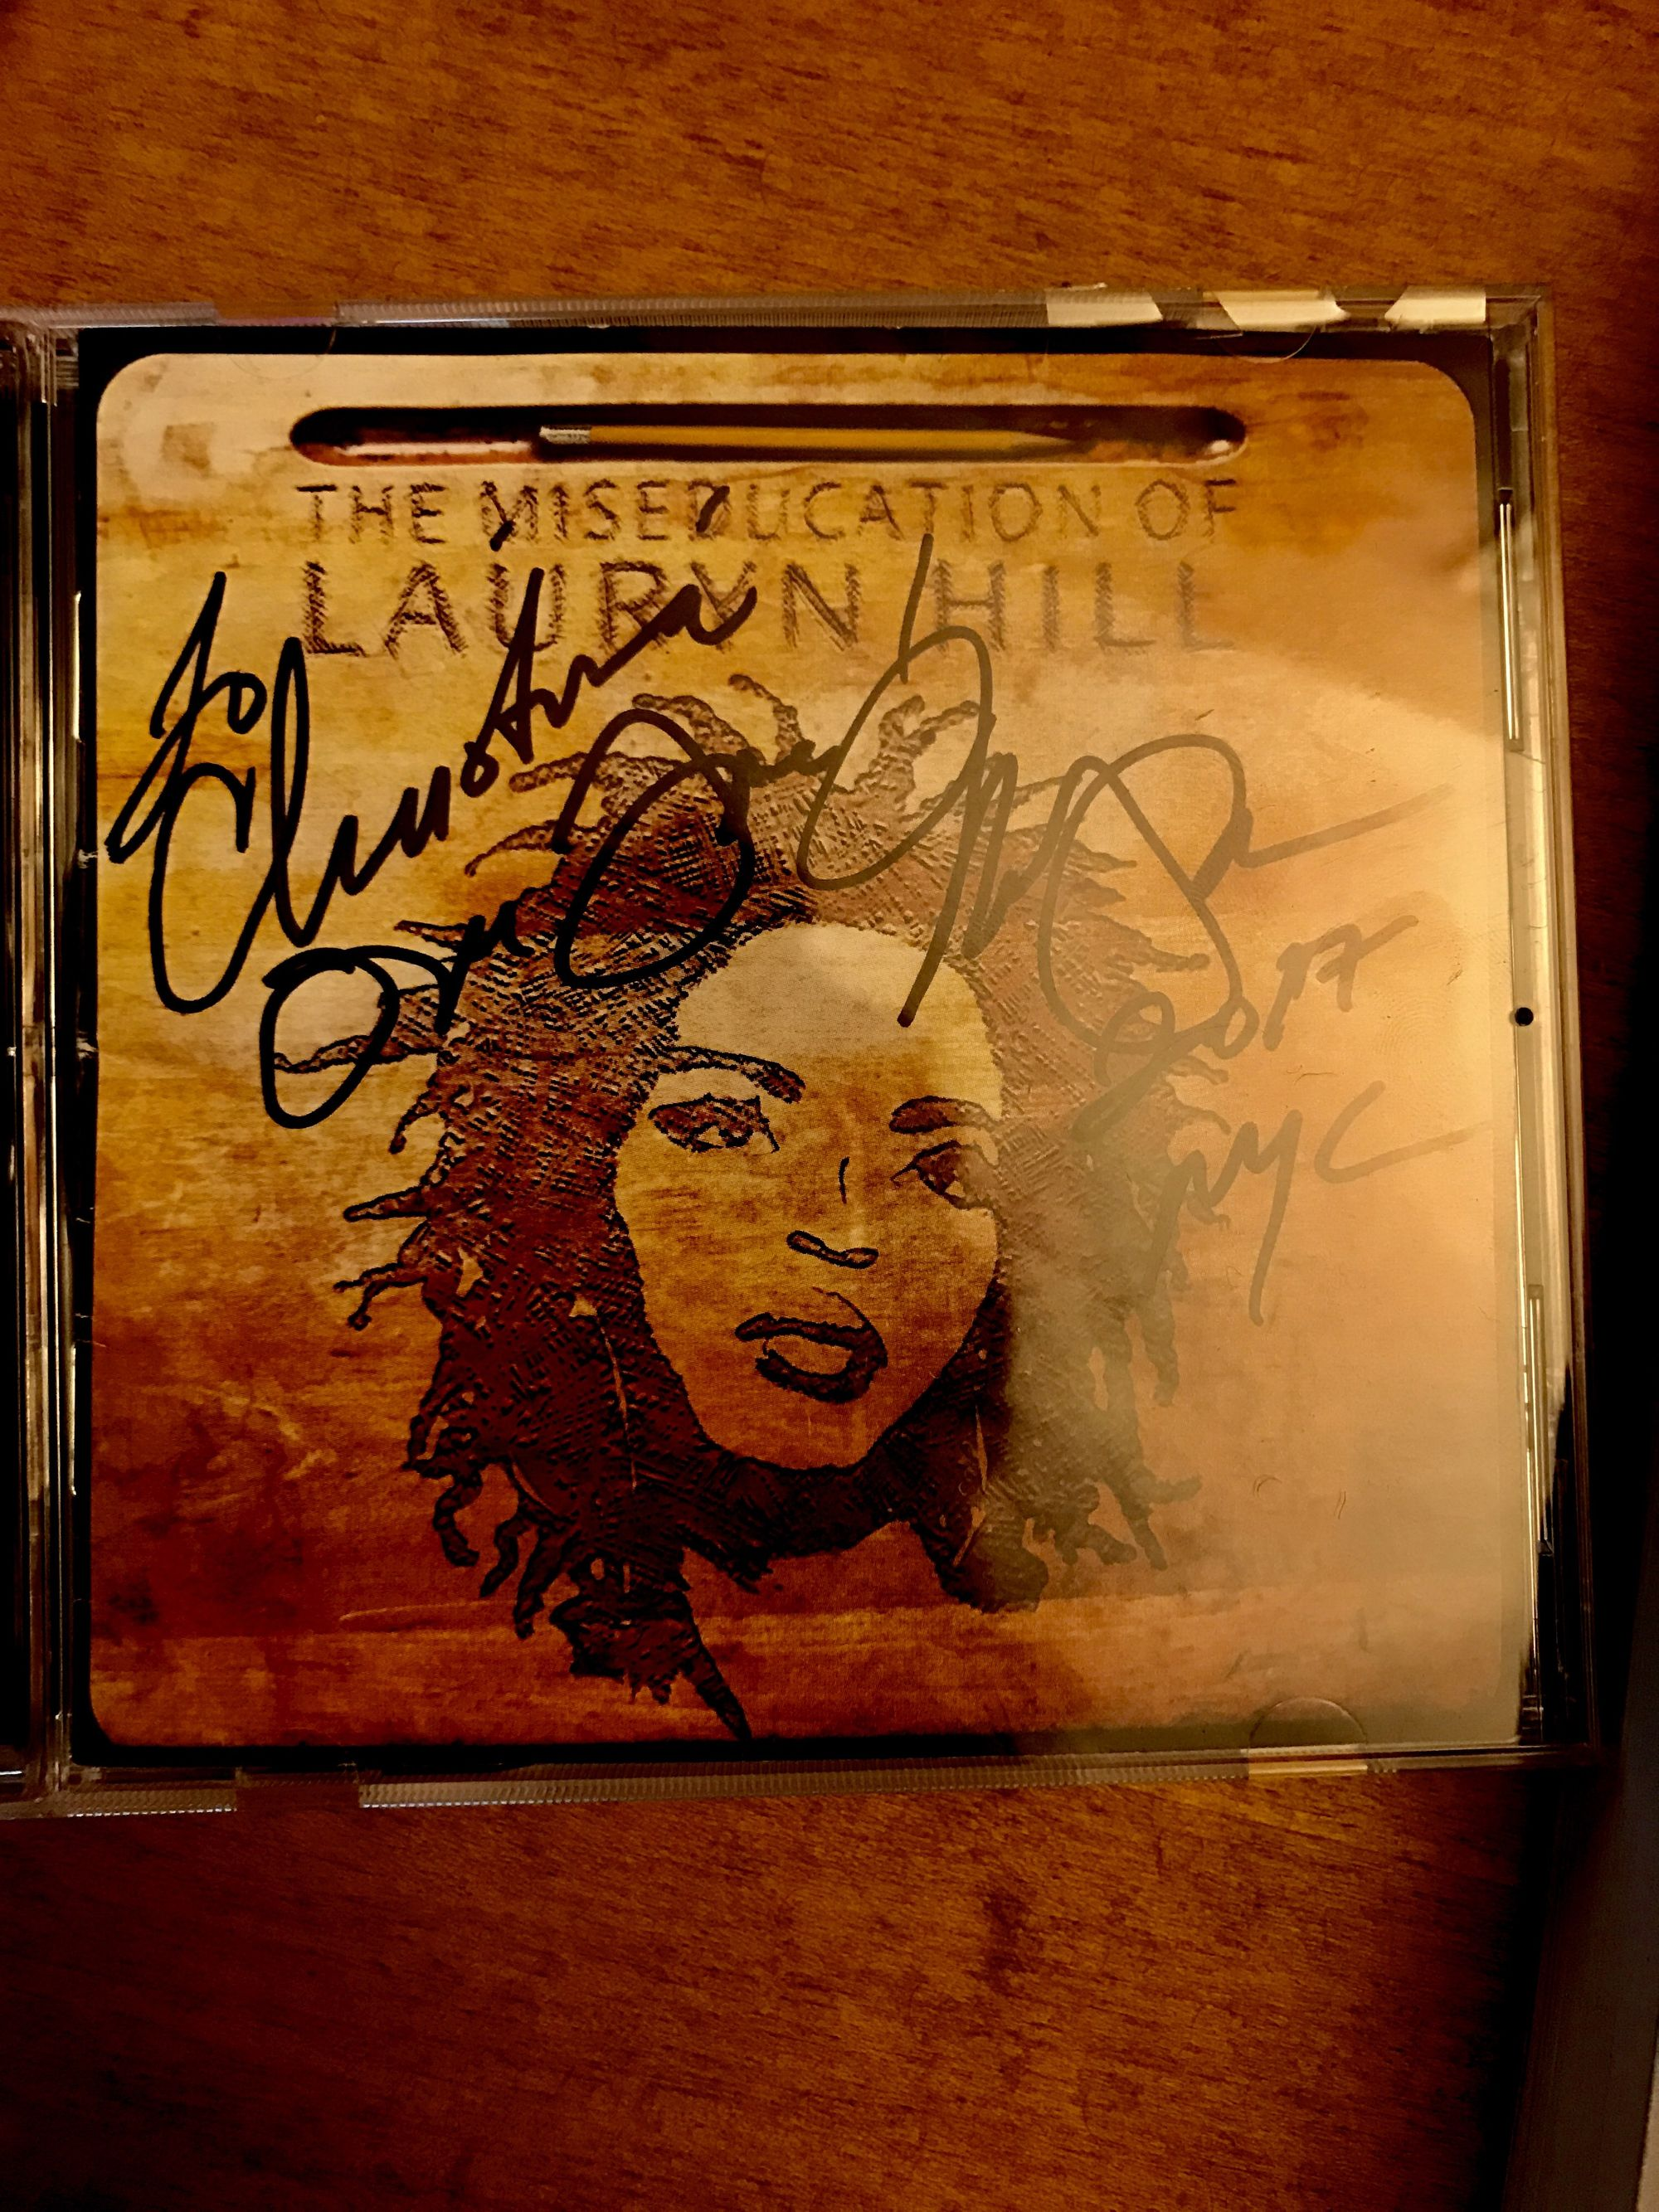 Christina's signed CD of Lauryn Hill's The Miseducation of Lauryn Hill